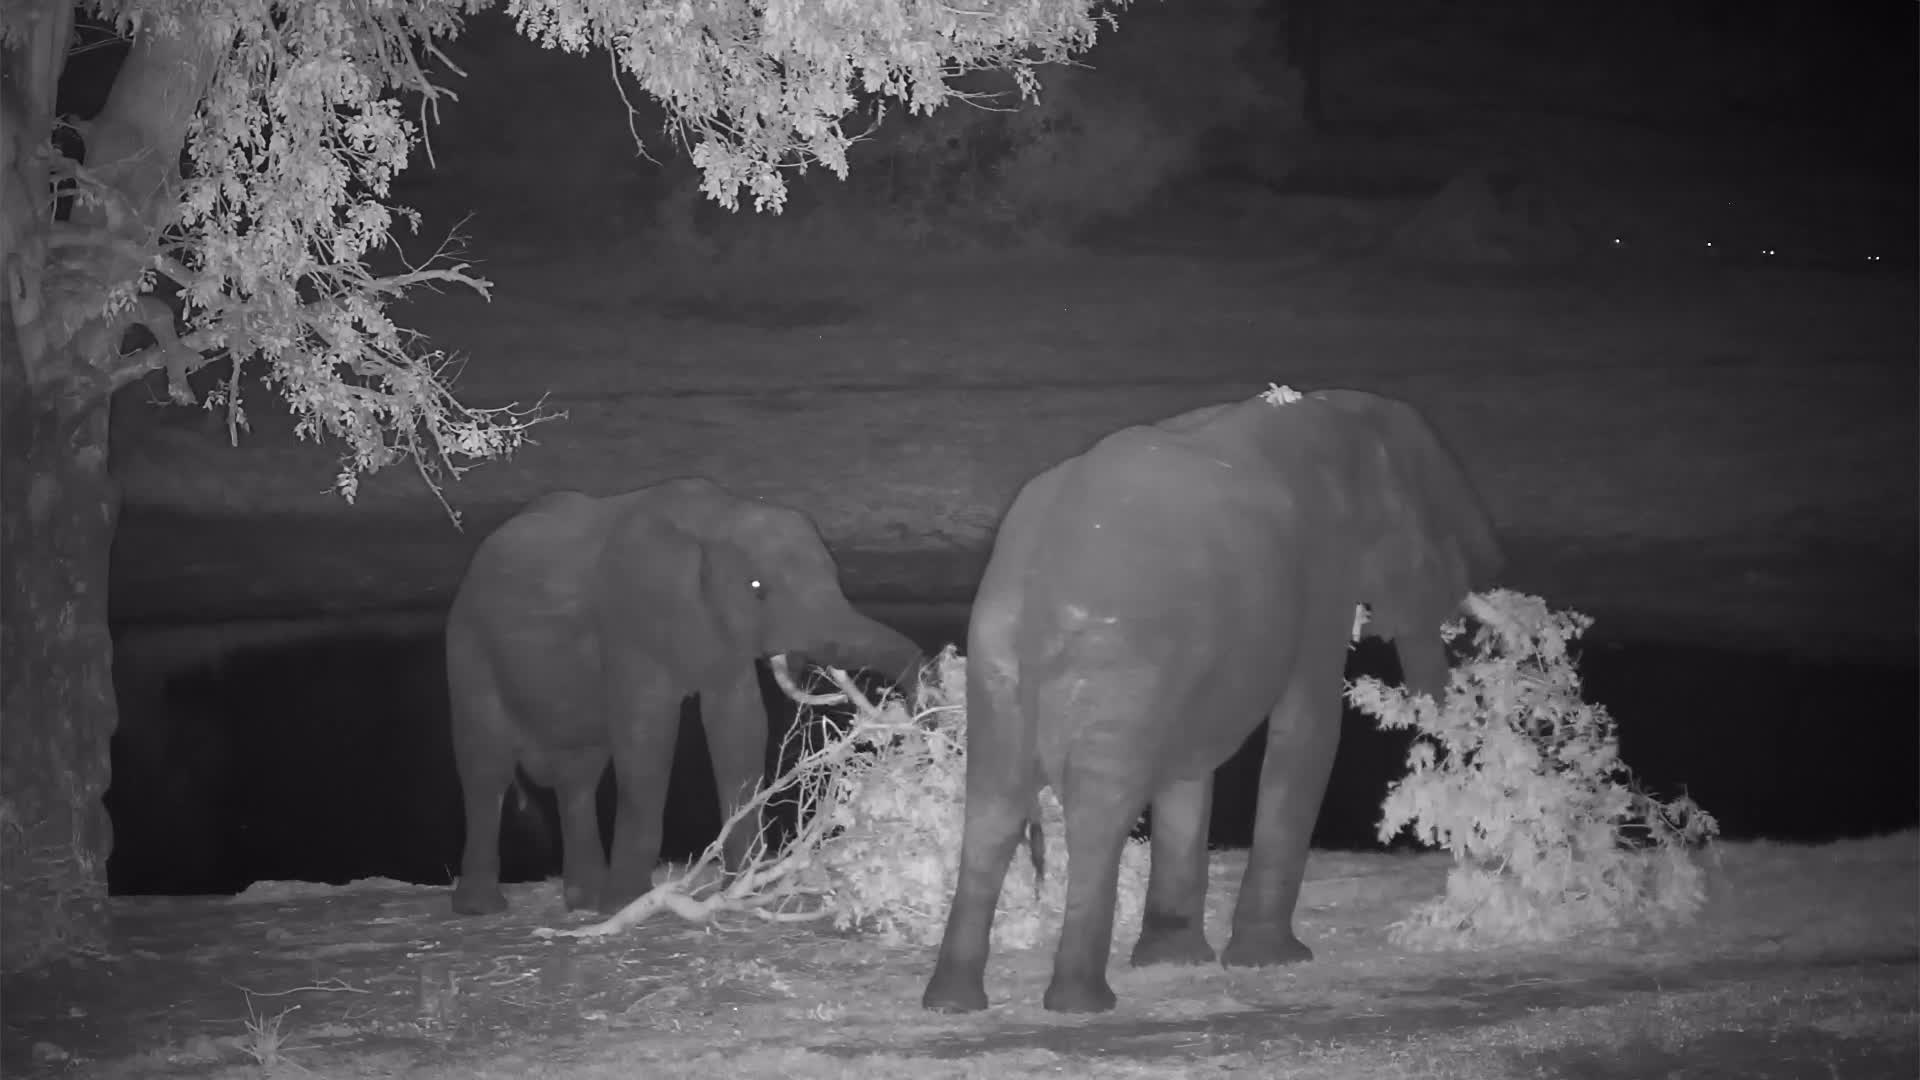 VIDEO: Elephant tore a branch off a tree for the fresh leaves and then shared it with his friend